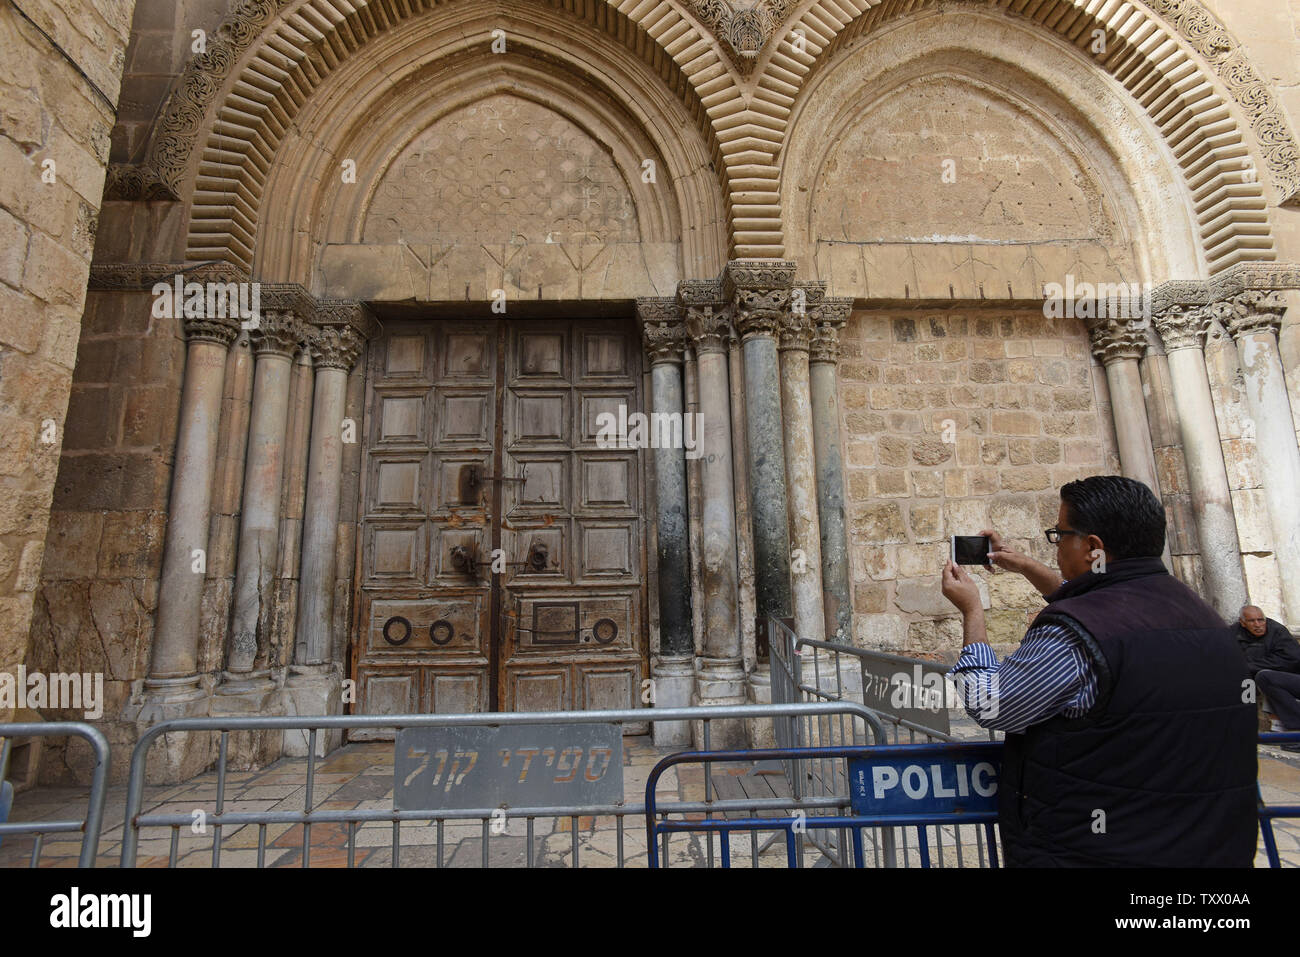 A tourist takes a photo of the locked doors of the Church of the